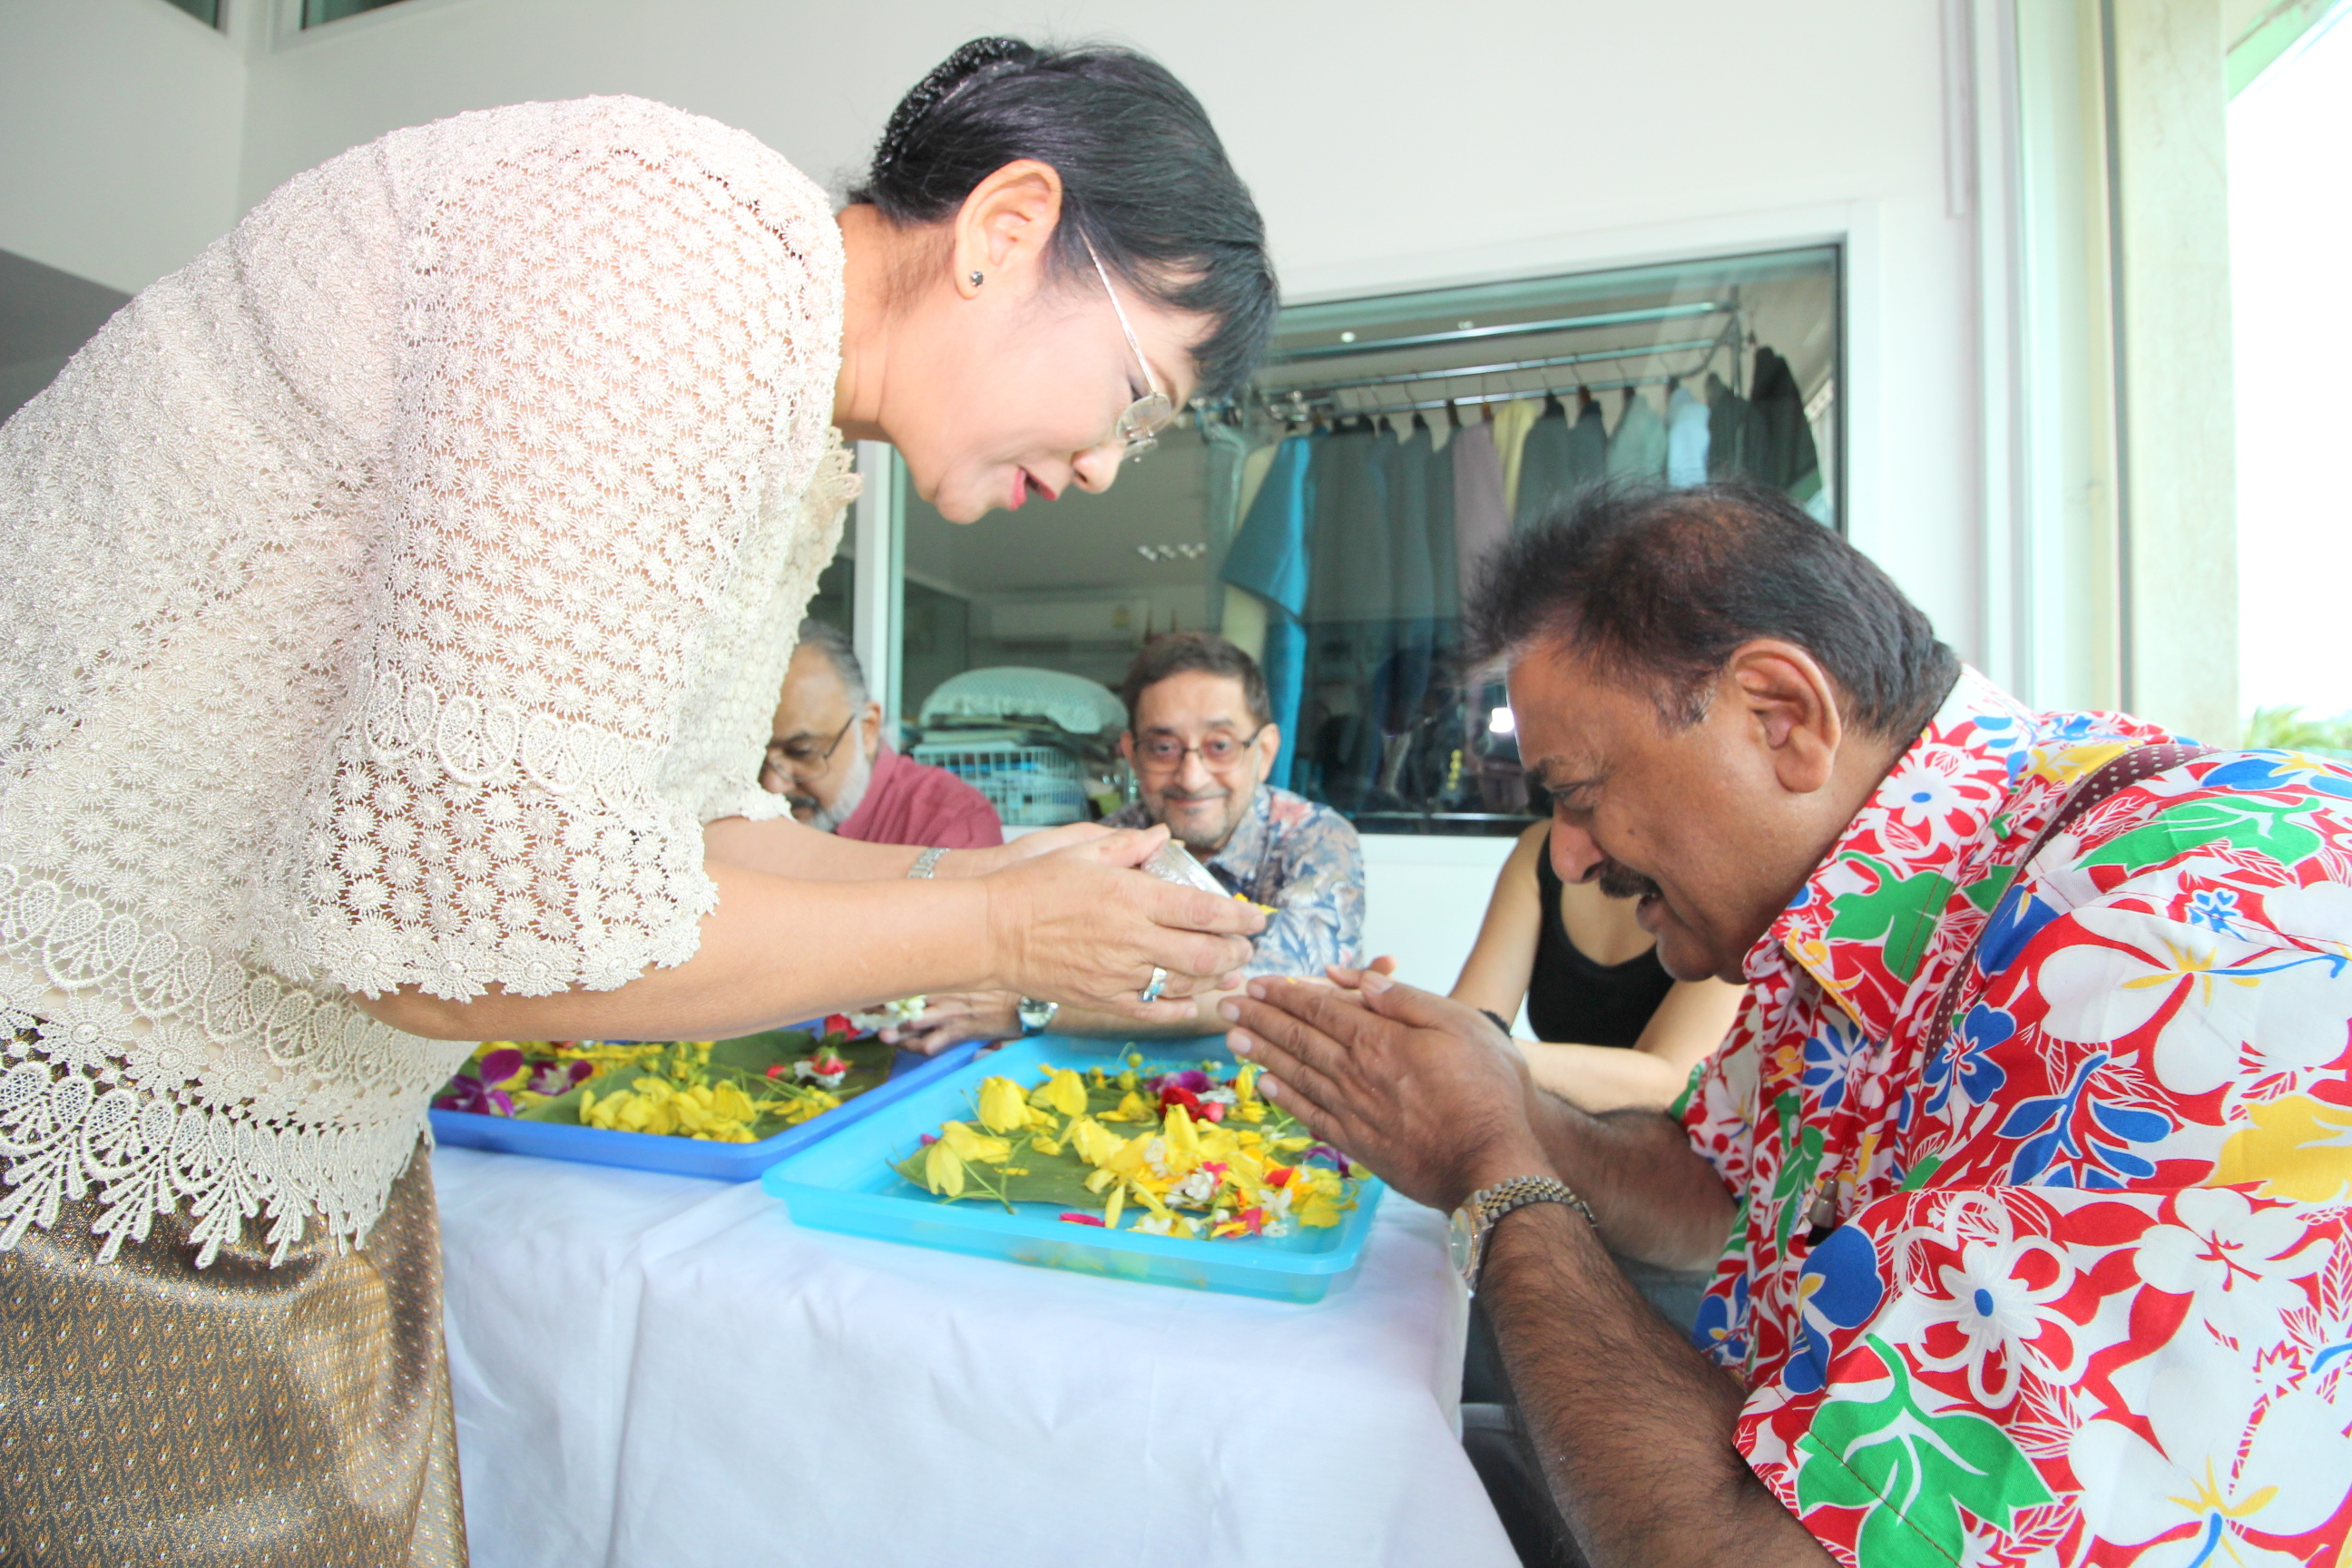 Rotary District Governor-elect pours lustral water on the hands of PDG Peter Malhotra who gives his blessings in return.